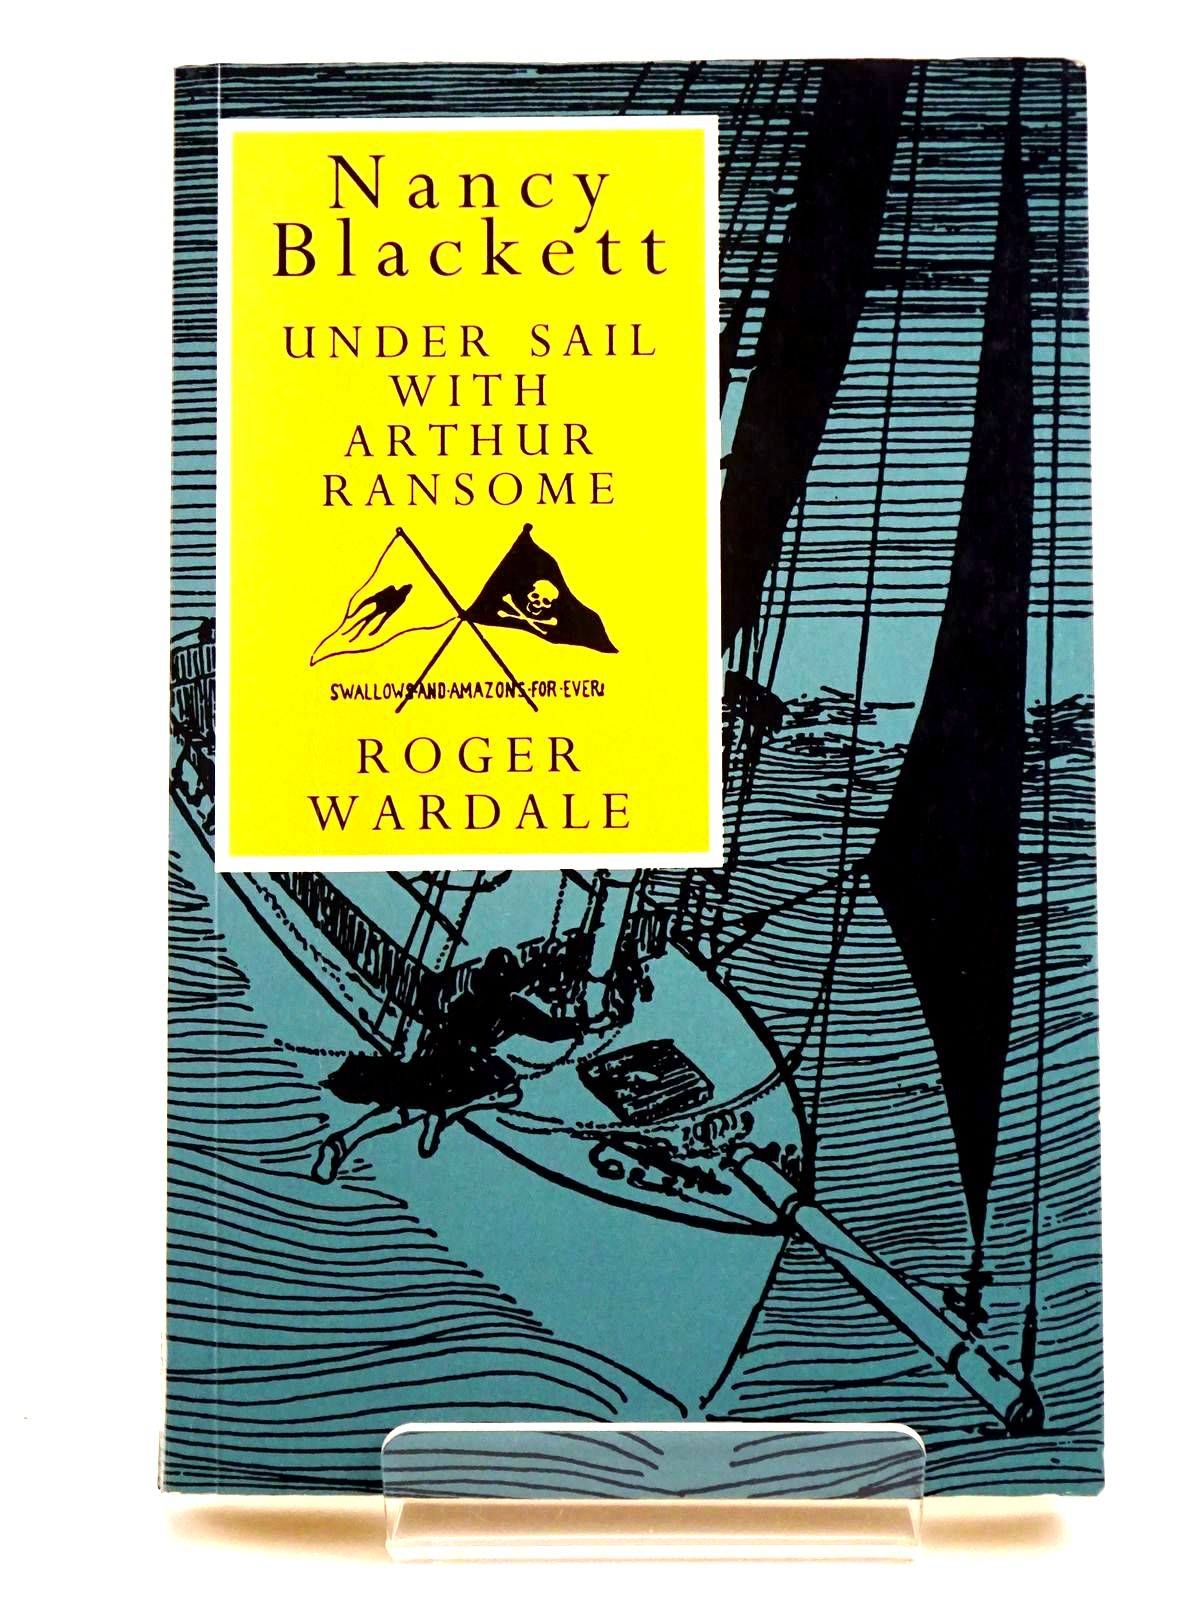 Photo of NANCY BLACKETT UNDER SAIL WITH ARTHUR RANSOME written by Wardale, Roger published by Jonathan Cape (STOCK CODE: 1318493)  for sale by Stella & Rose's Books